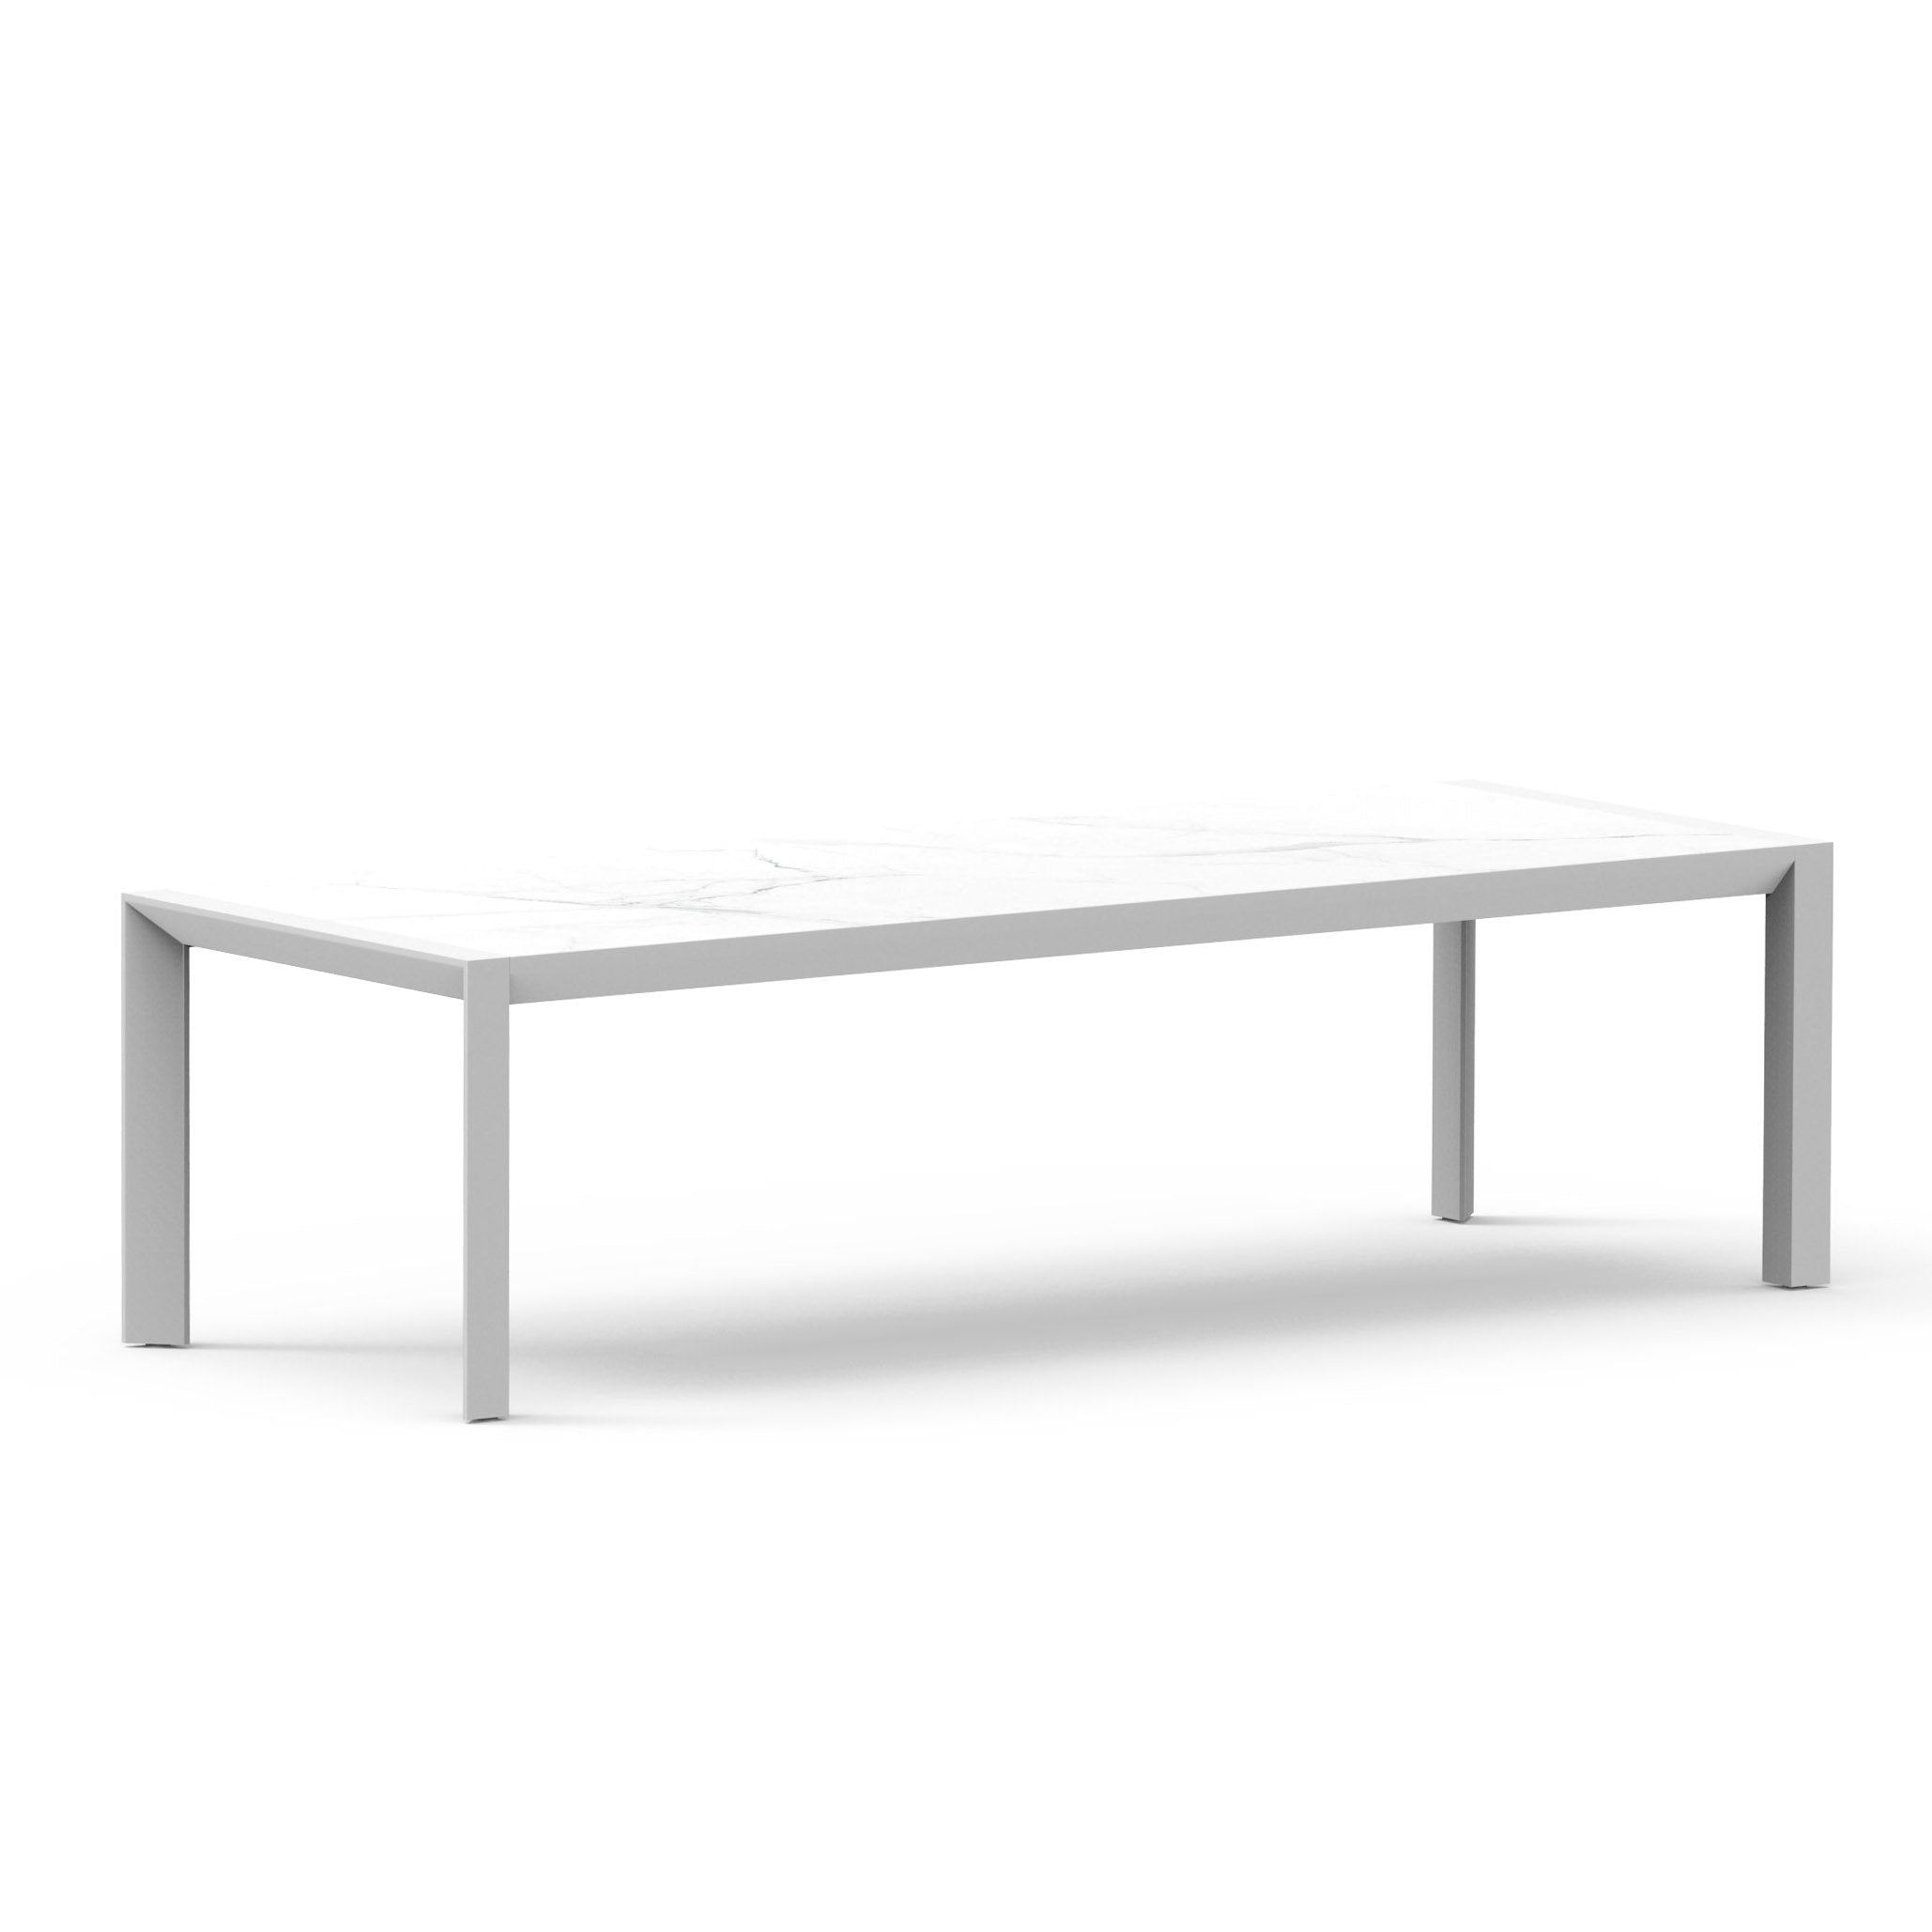 VAUCLUSE Outdoor Dining Table | White